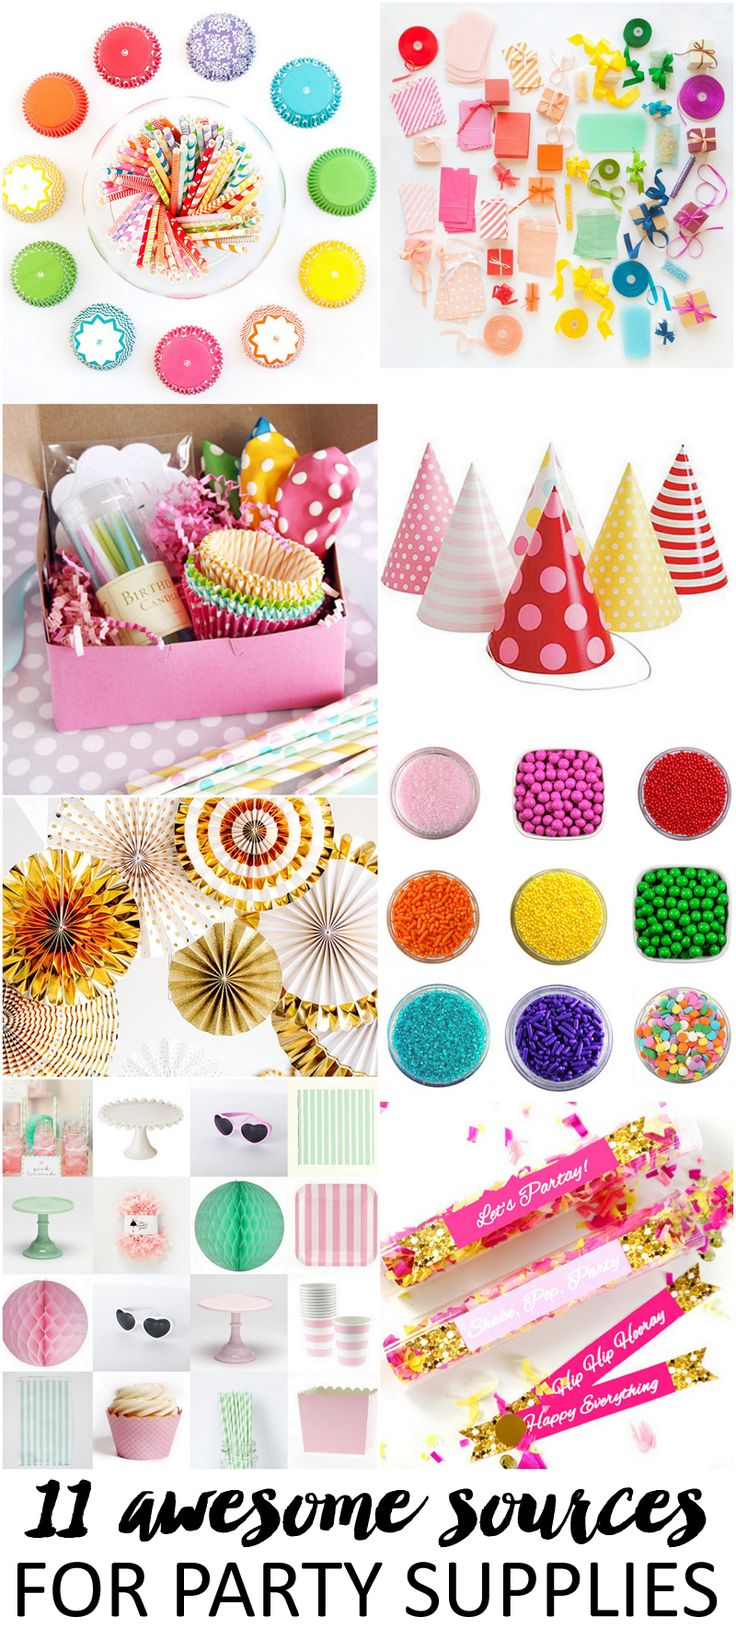 Big happy birthday badges party products party delights - Big Happy Birthday Badges Party Products Party Delights 11 Awesome Sources For Party Supplies Download